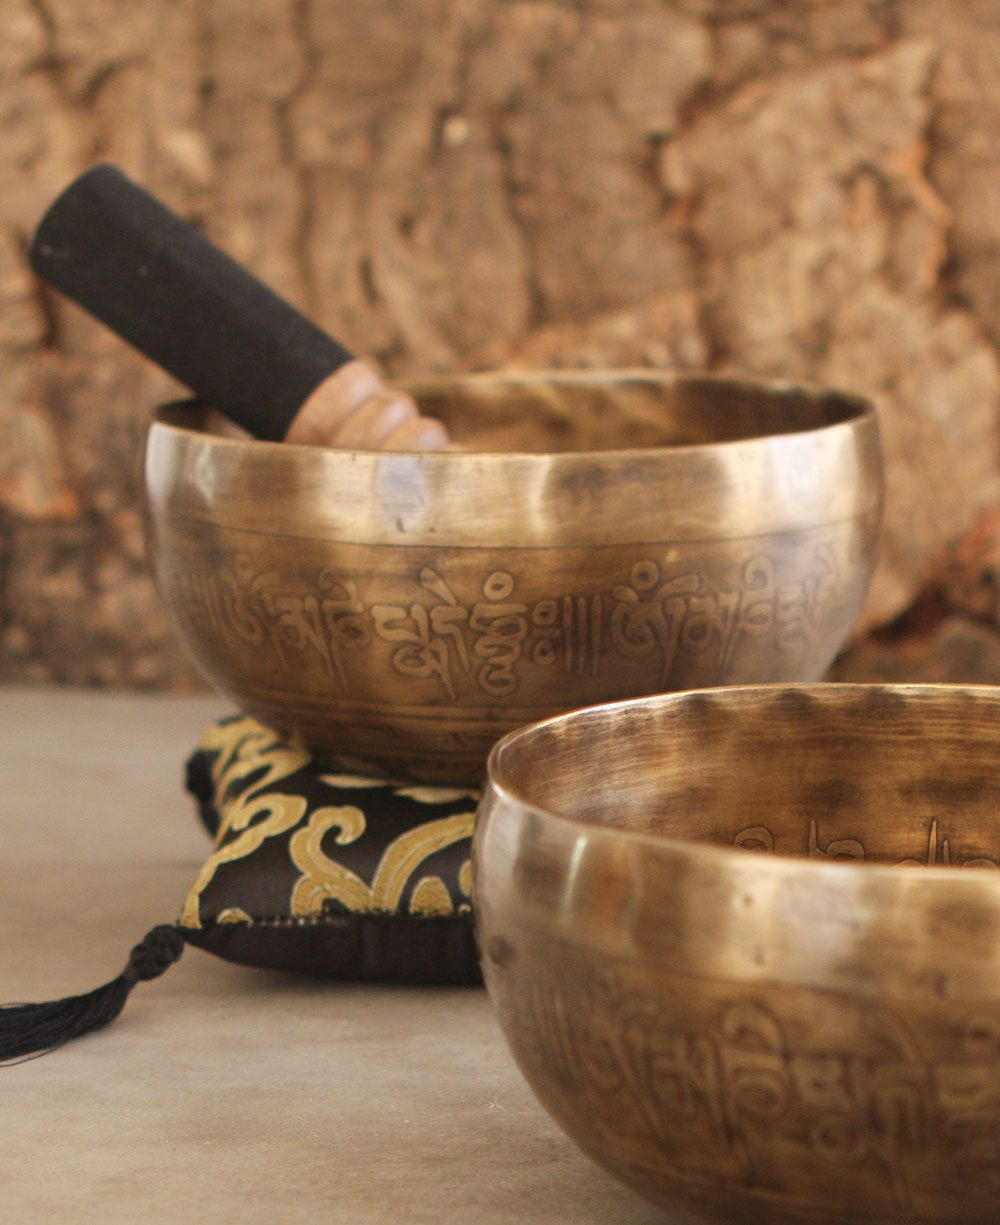 Tibetan Brass Singing Bowl for Mediatation and Healing Diameter 4.5 Inches Handmade Bowl from Nepal Tibetan Singing Bowl For Healing Meditation Prayer and Yoga Christmas Gifts for Buddhists Meditation Bowls,Hand Beaten Singing Bowl Singing Bowls